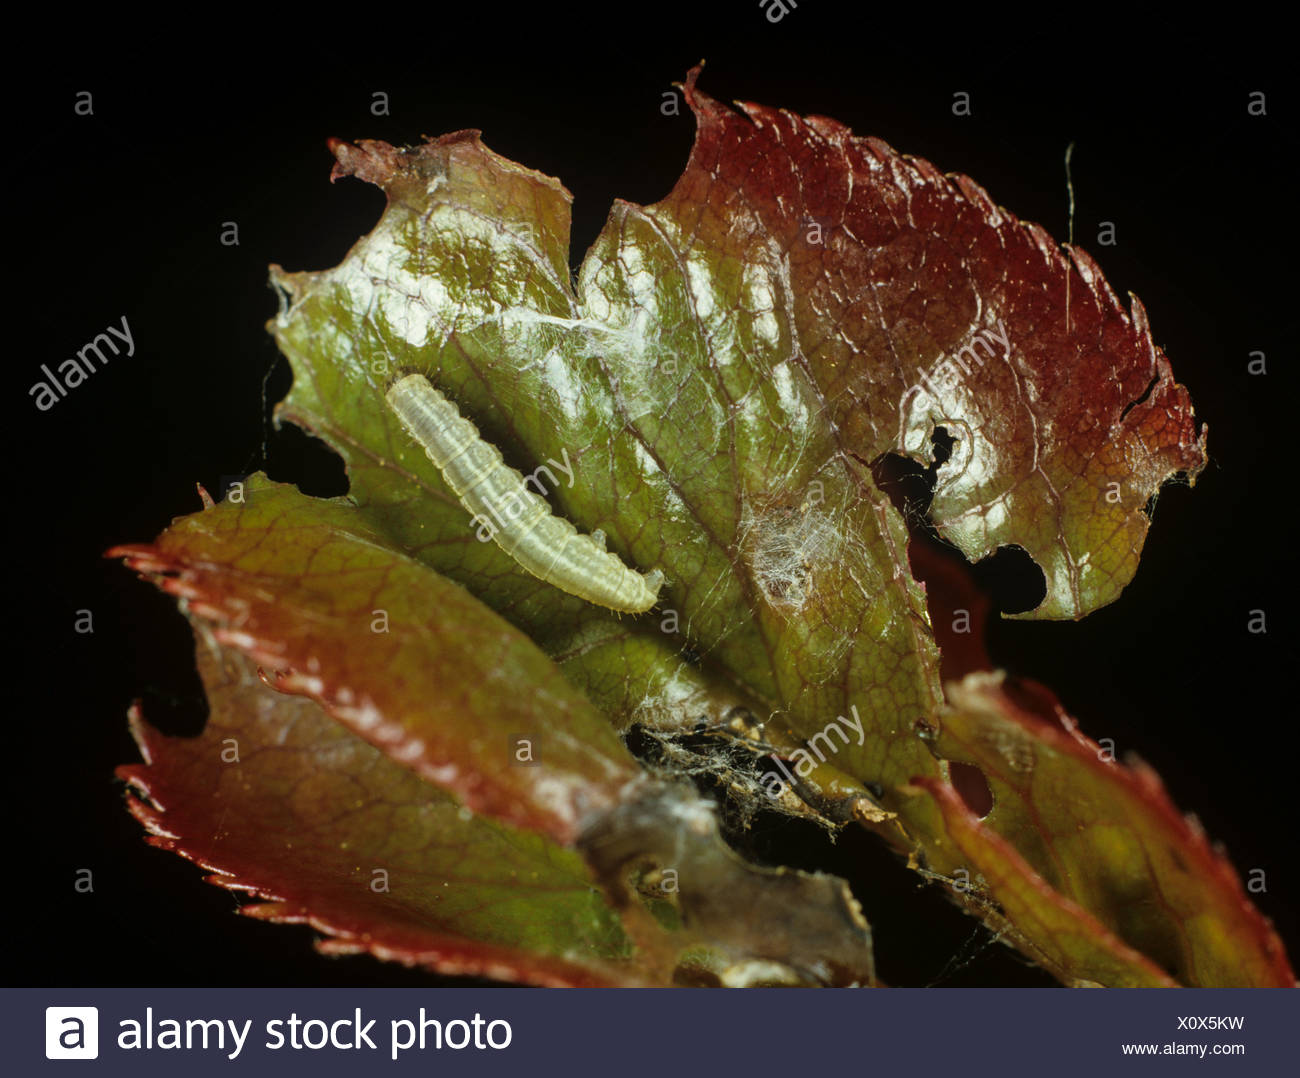 Winter moth Operophtera brumata and damage to young rose leaf - Stock Image